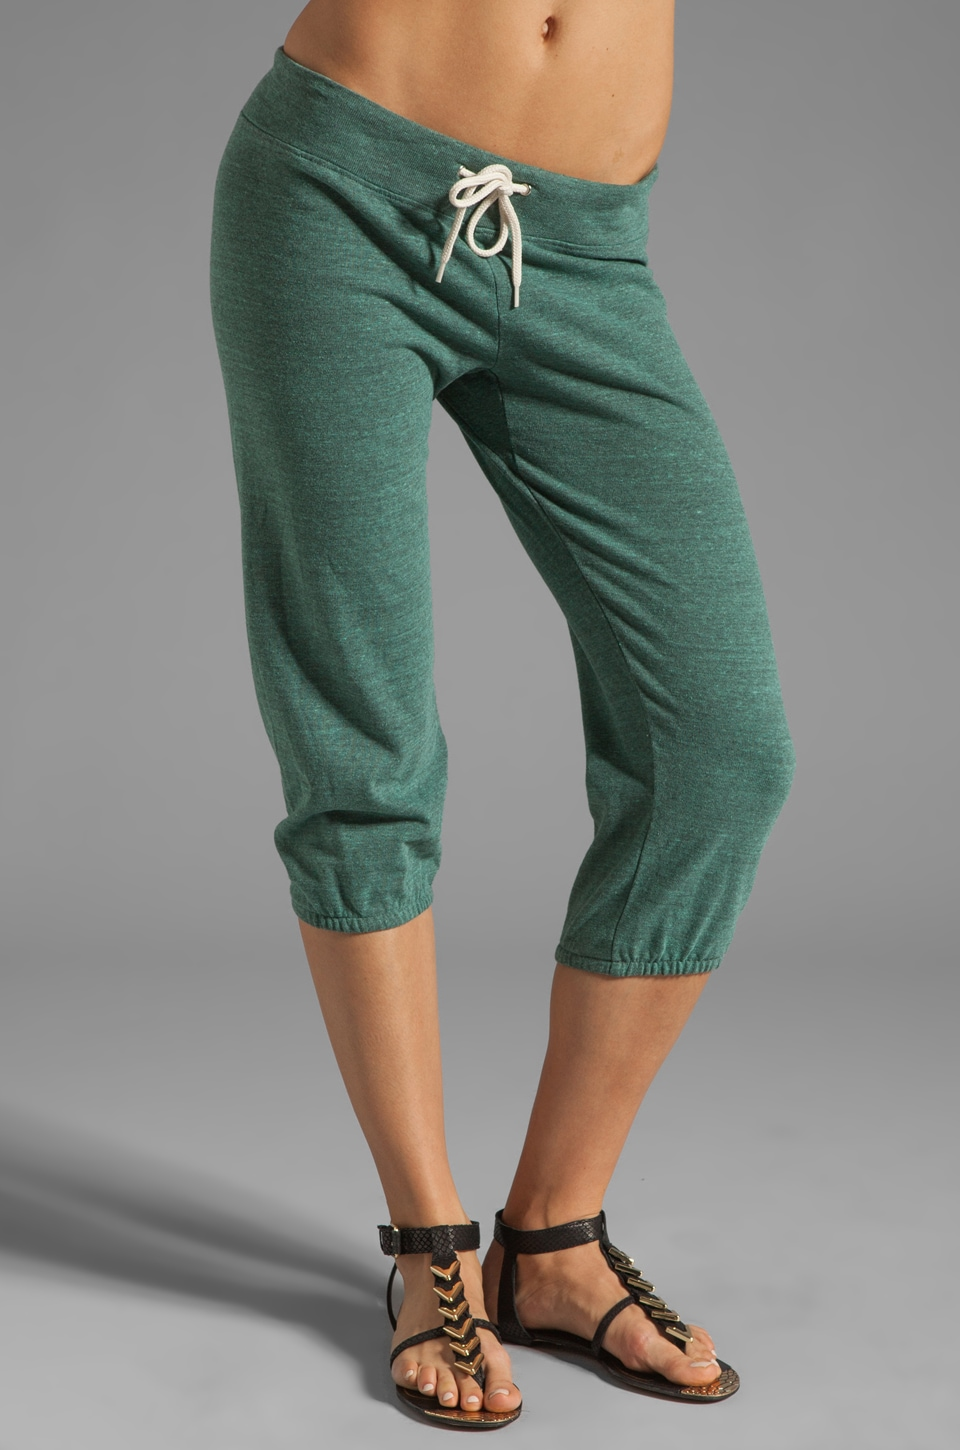 MONROW Heather Fleece 3/4 Vintage Sweats in Mint